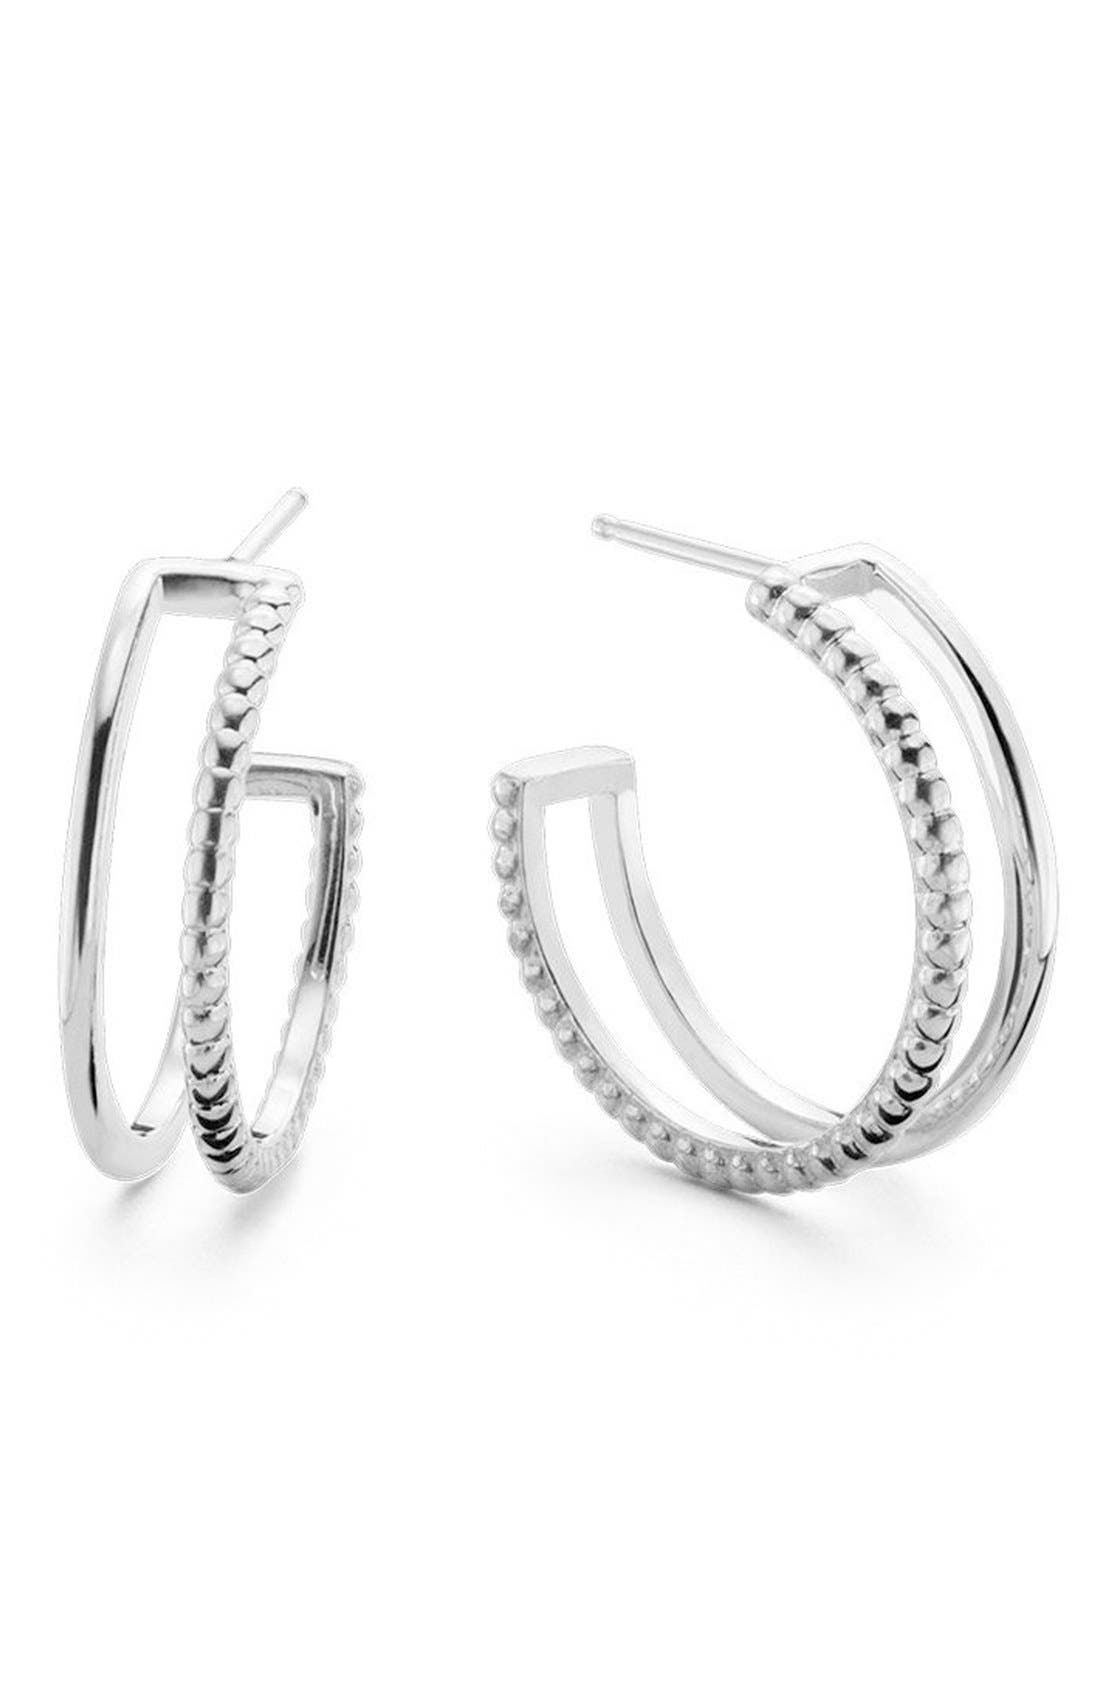 Main Image - Shinola Open Hoop Earrings